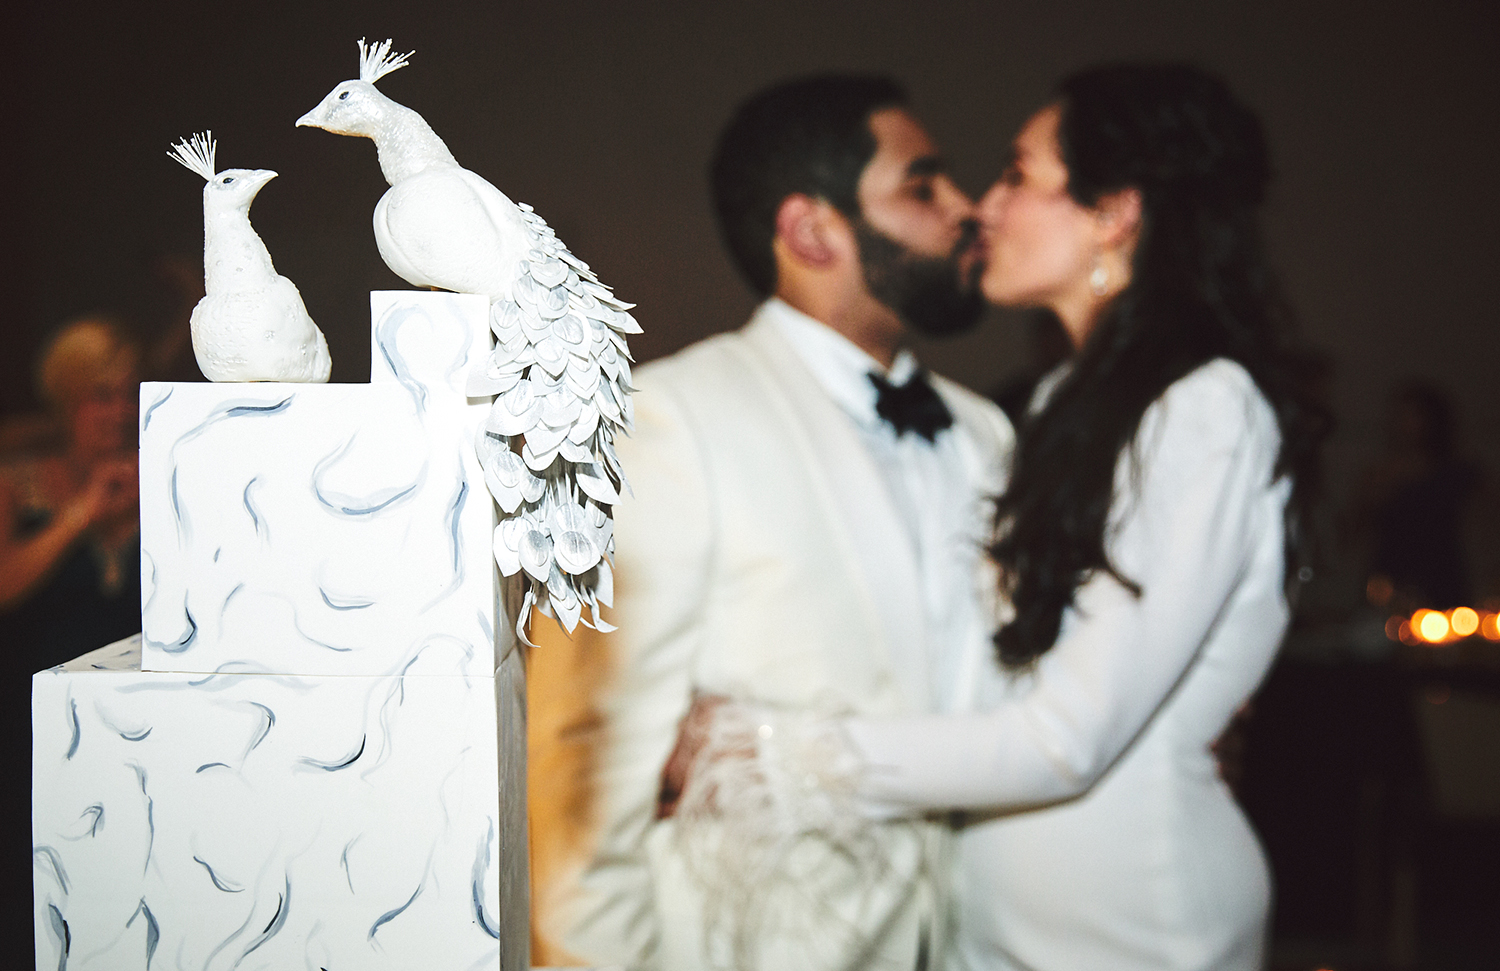 170930_WilliamValeWeddingPhotography_BrooklynWeddingPhotographer_By_BriJohnsonWeddings_0179.jpg